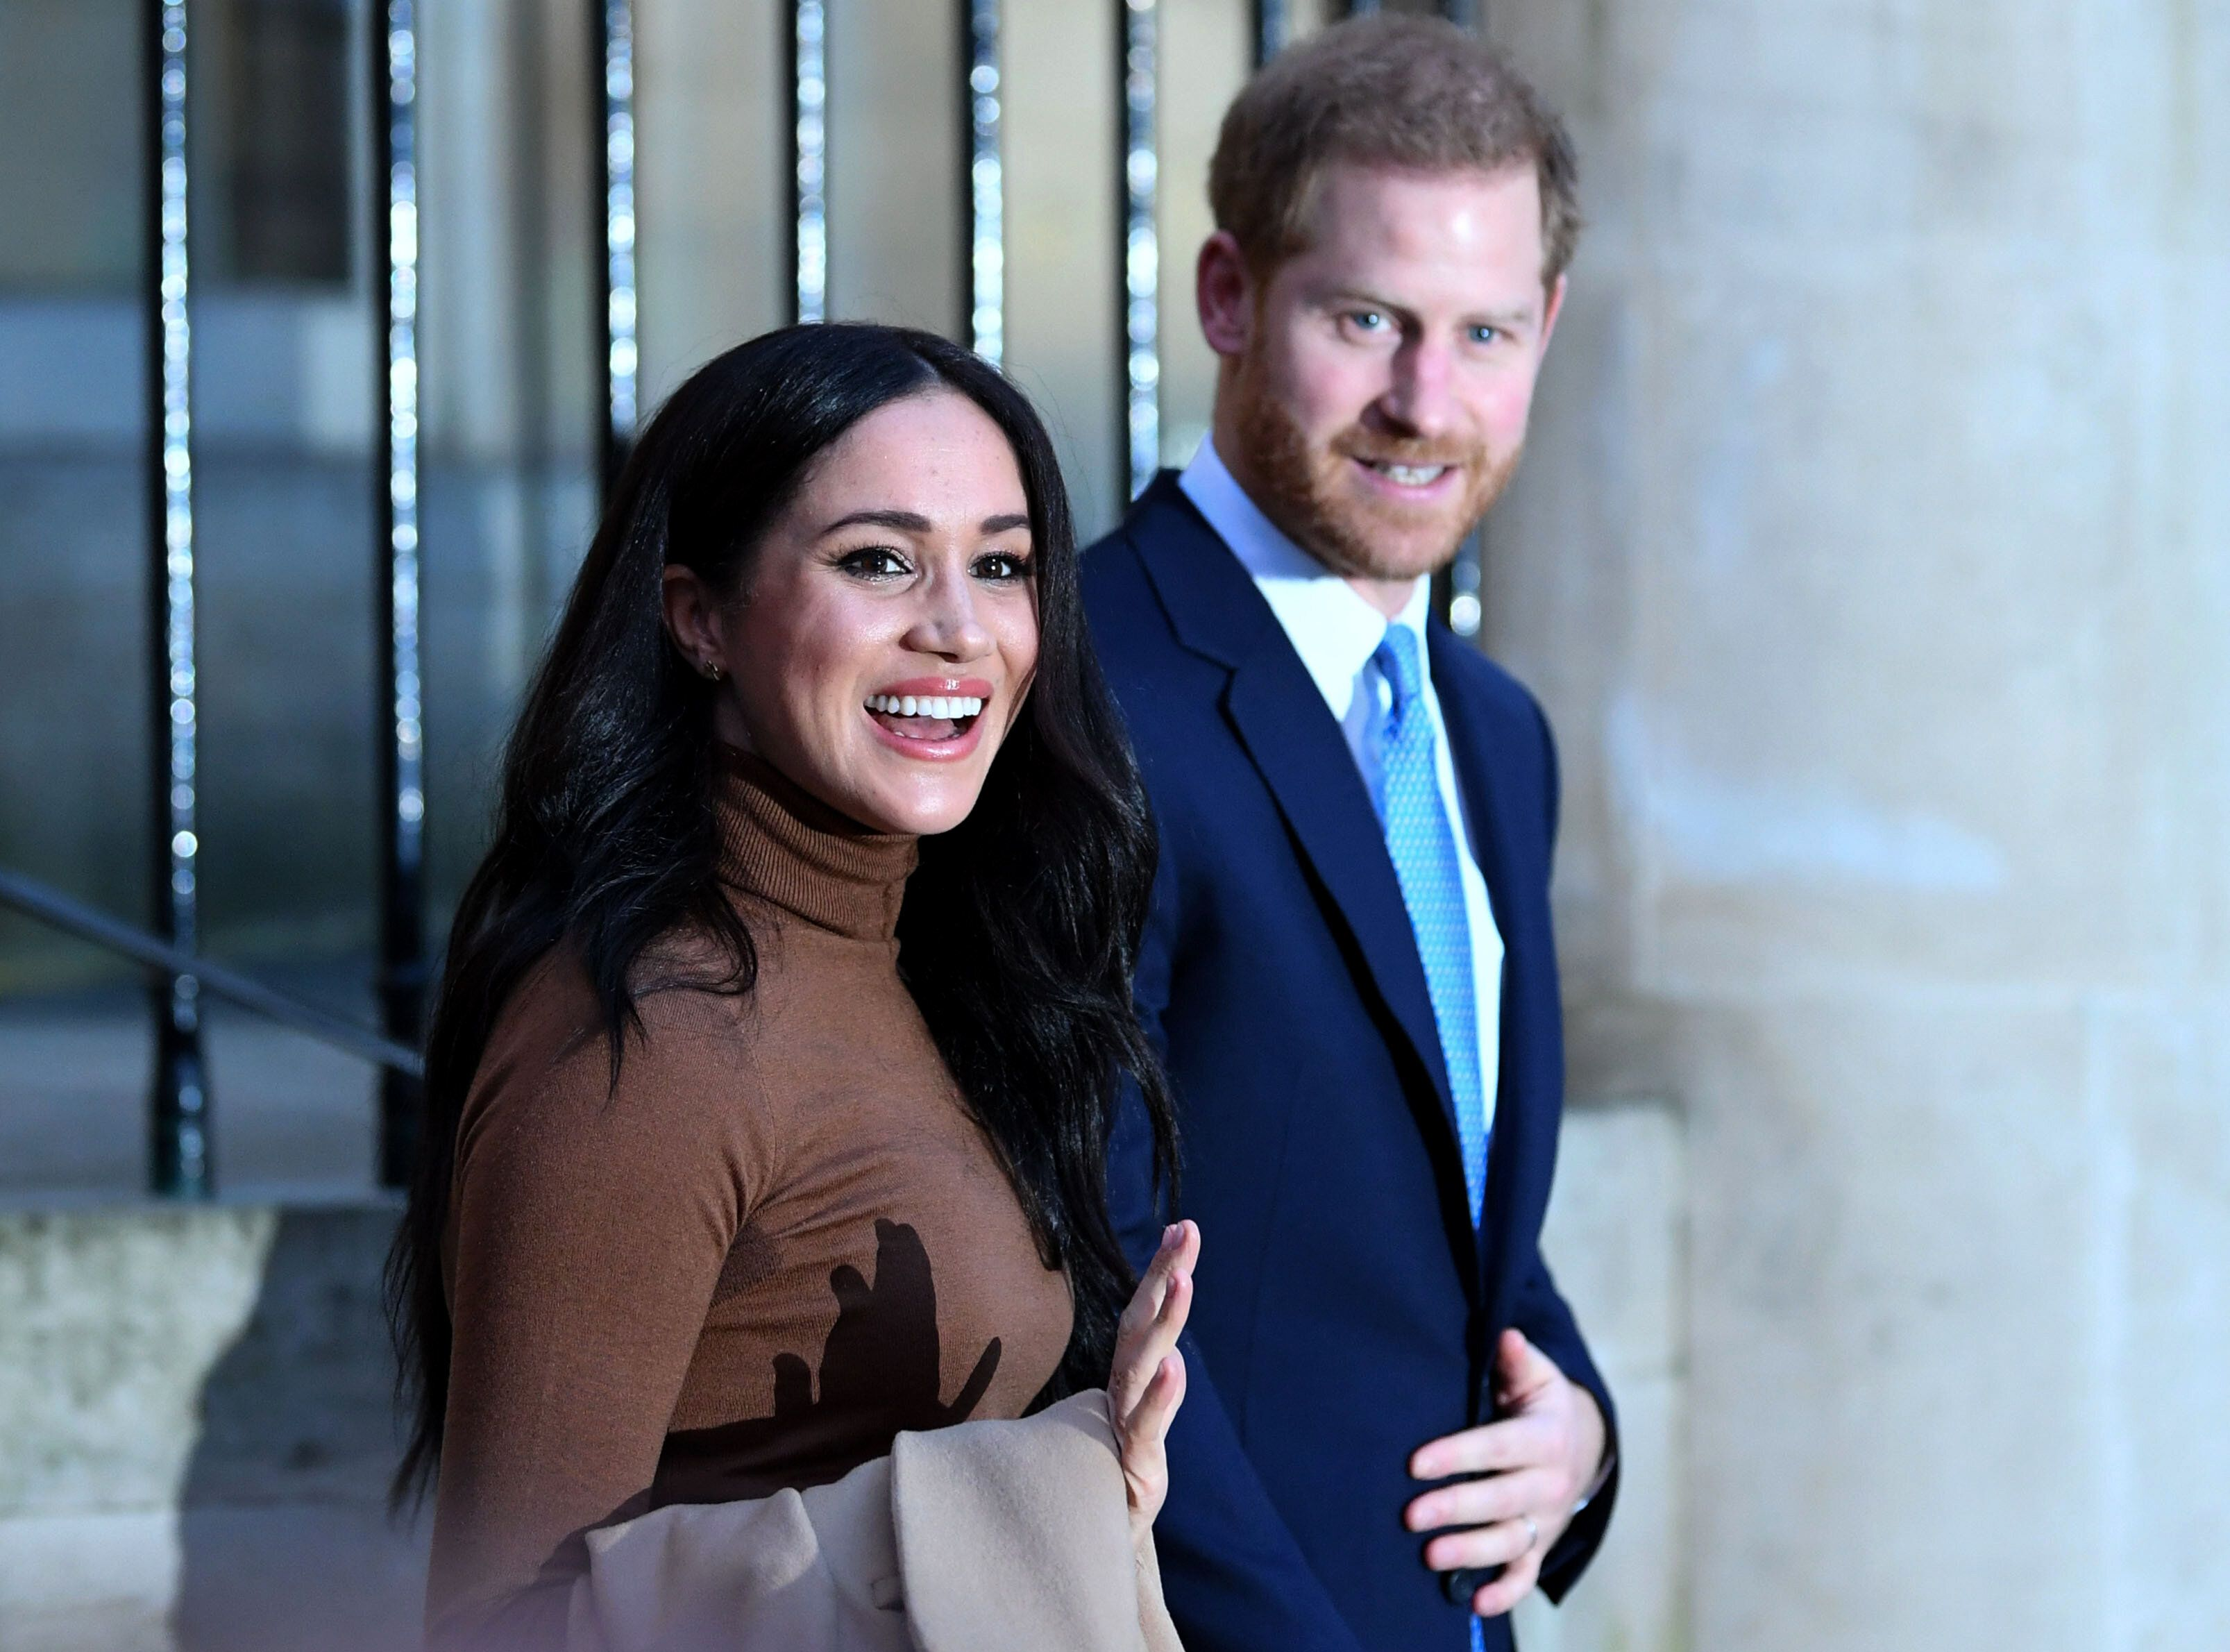 The Duke and Duchess of Sussex in London, one day before their bombshell announcement.